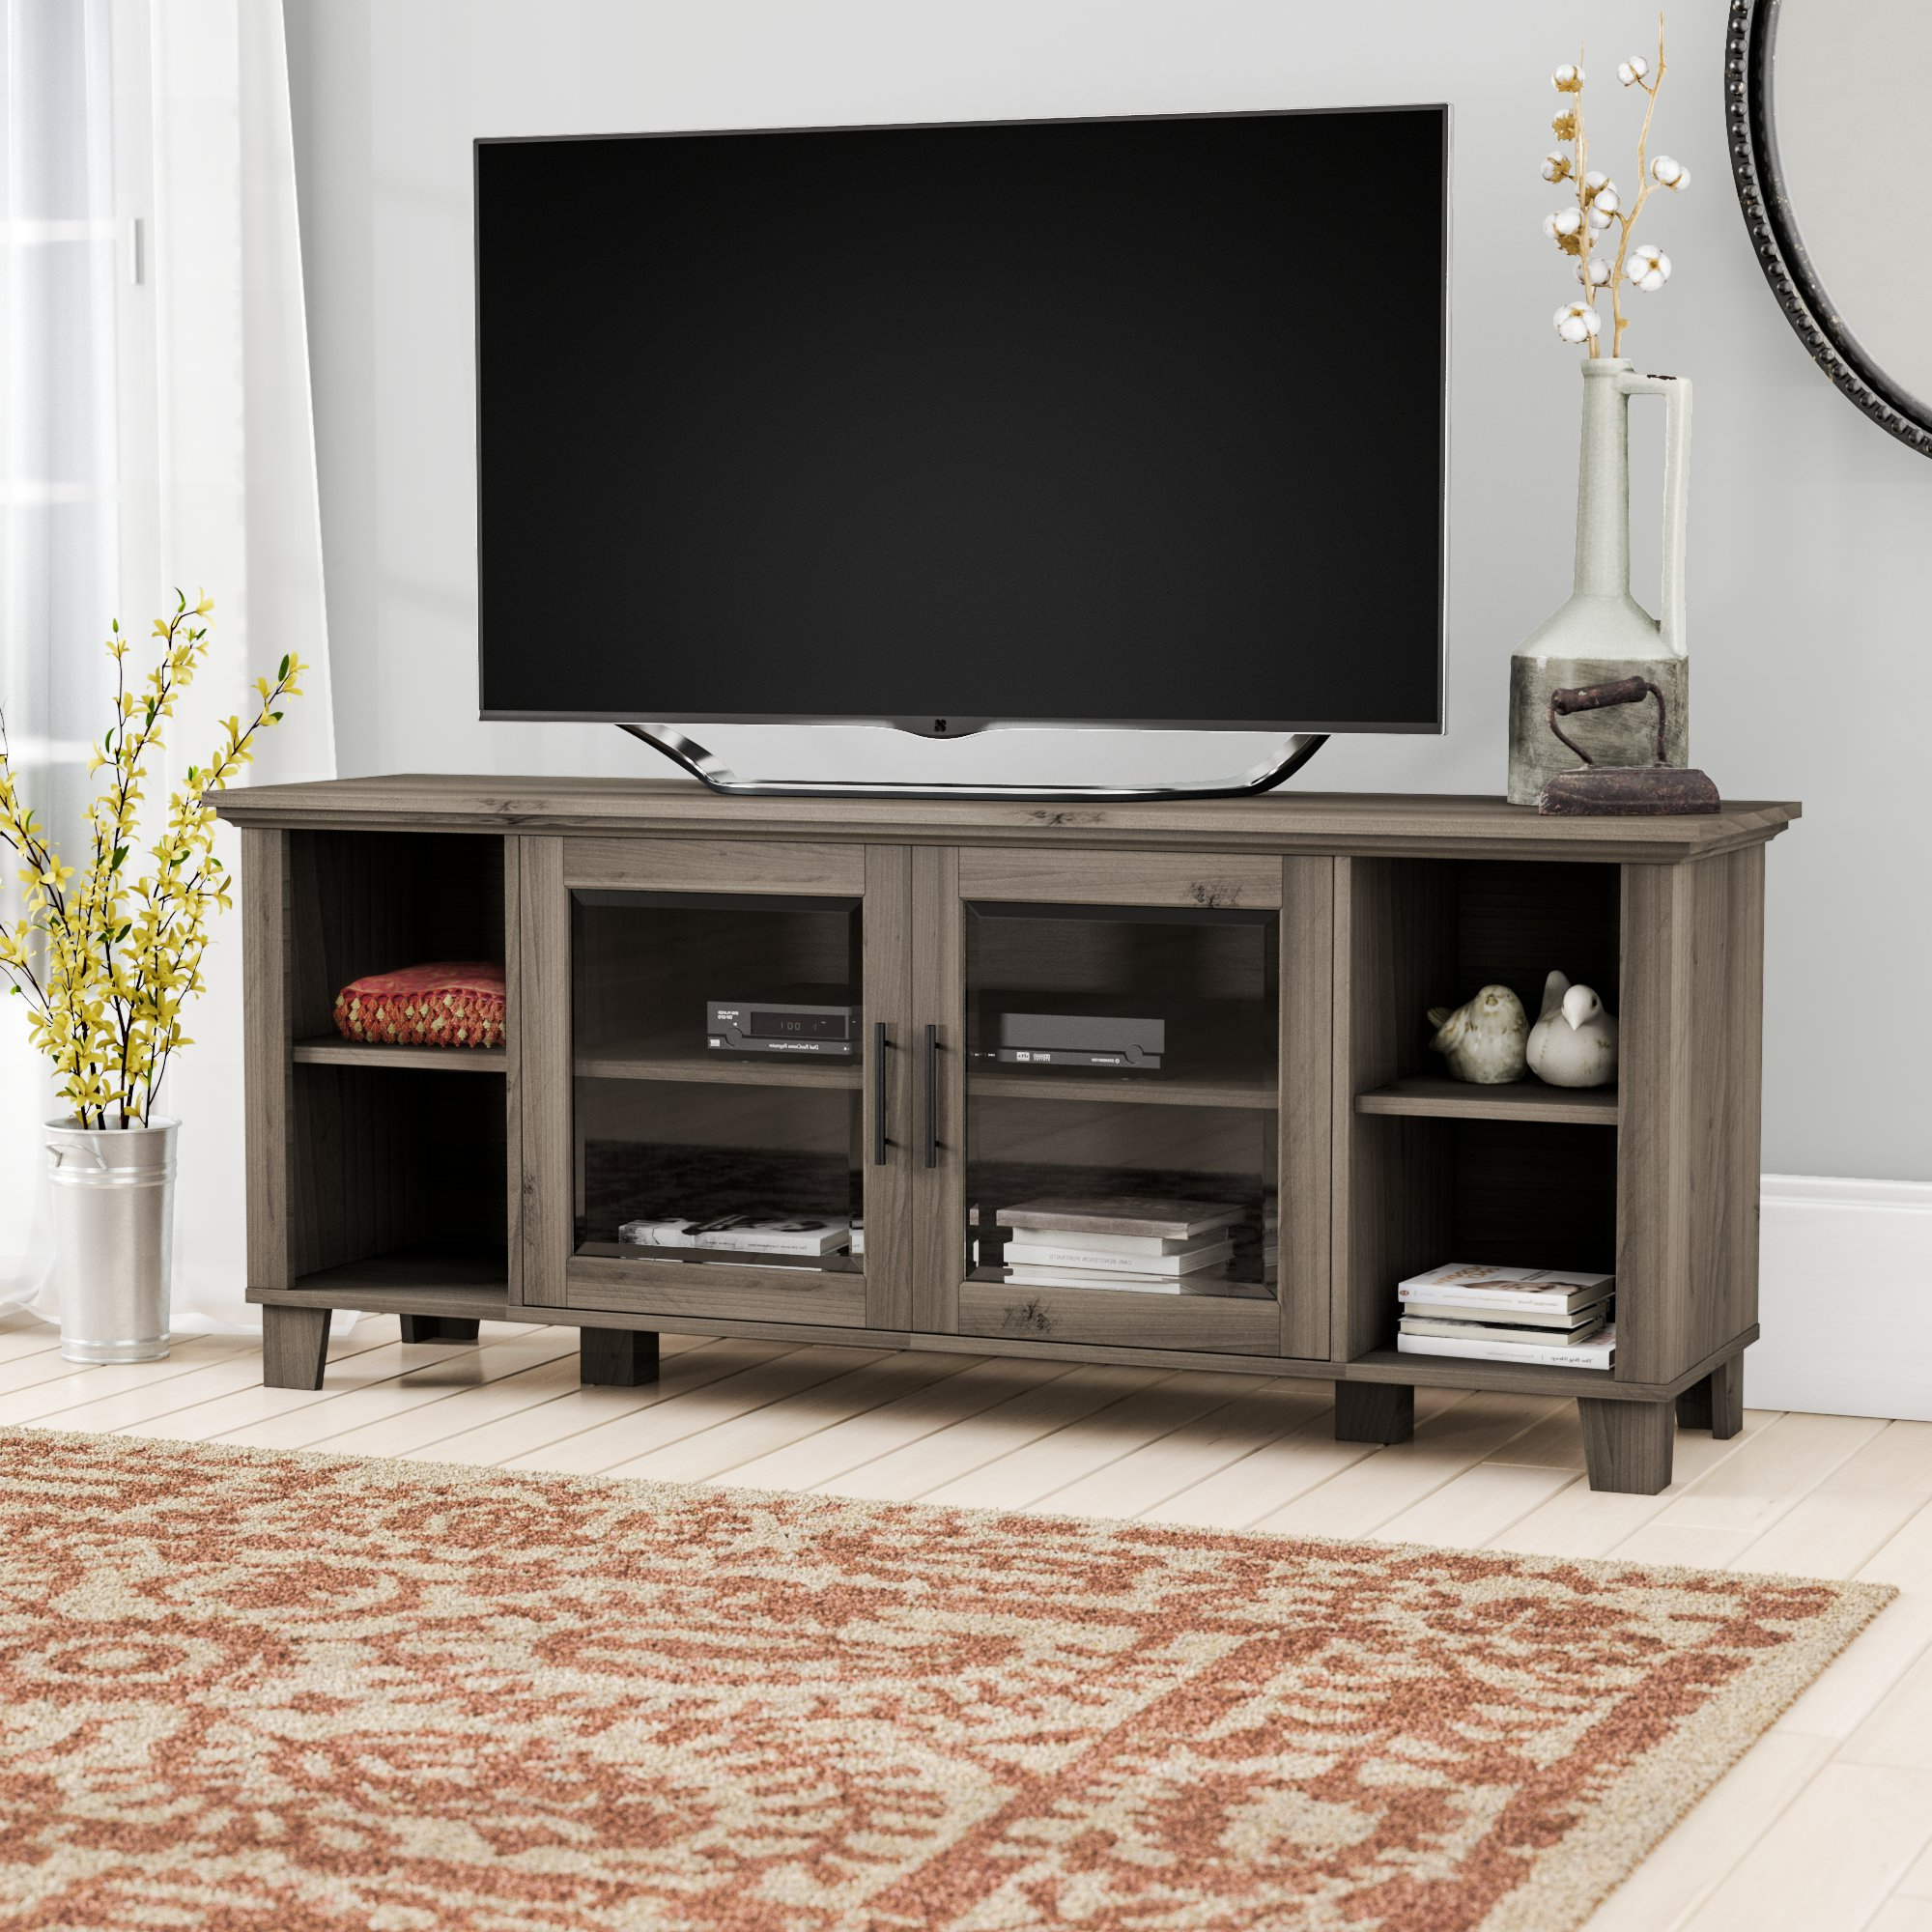 Grey Tv Stands | Birch Lane With Regard To Sinclair Grey 74 Inch Tv Stands (View 7 of 20)